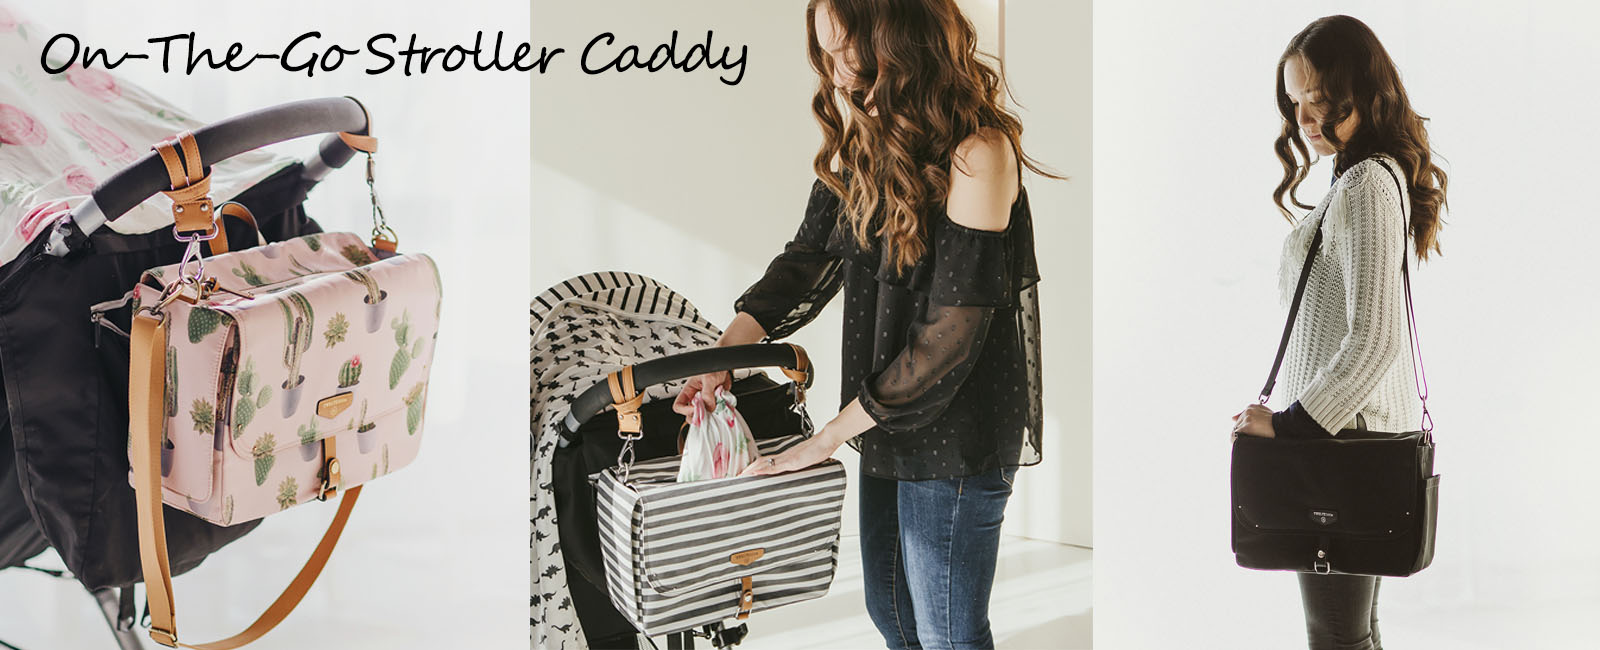 twelve little stroller caddy